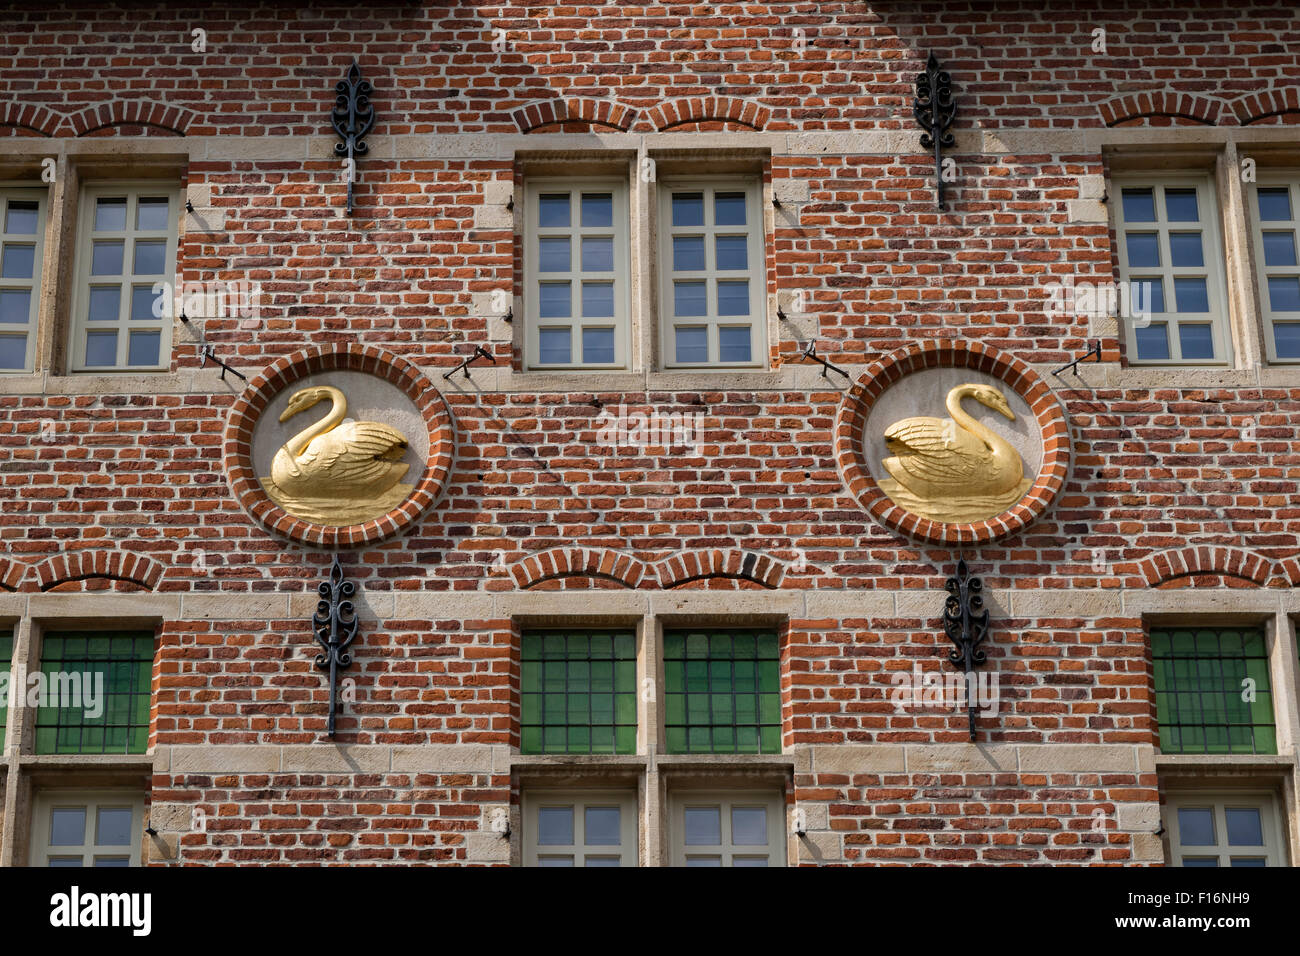 Medieval facade with swans in the city center of Ghend, Belgium - Stock Image